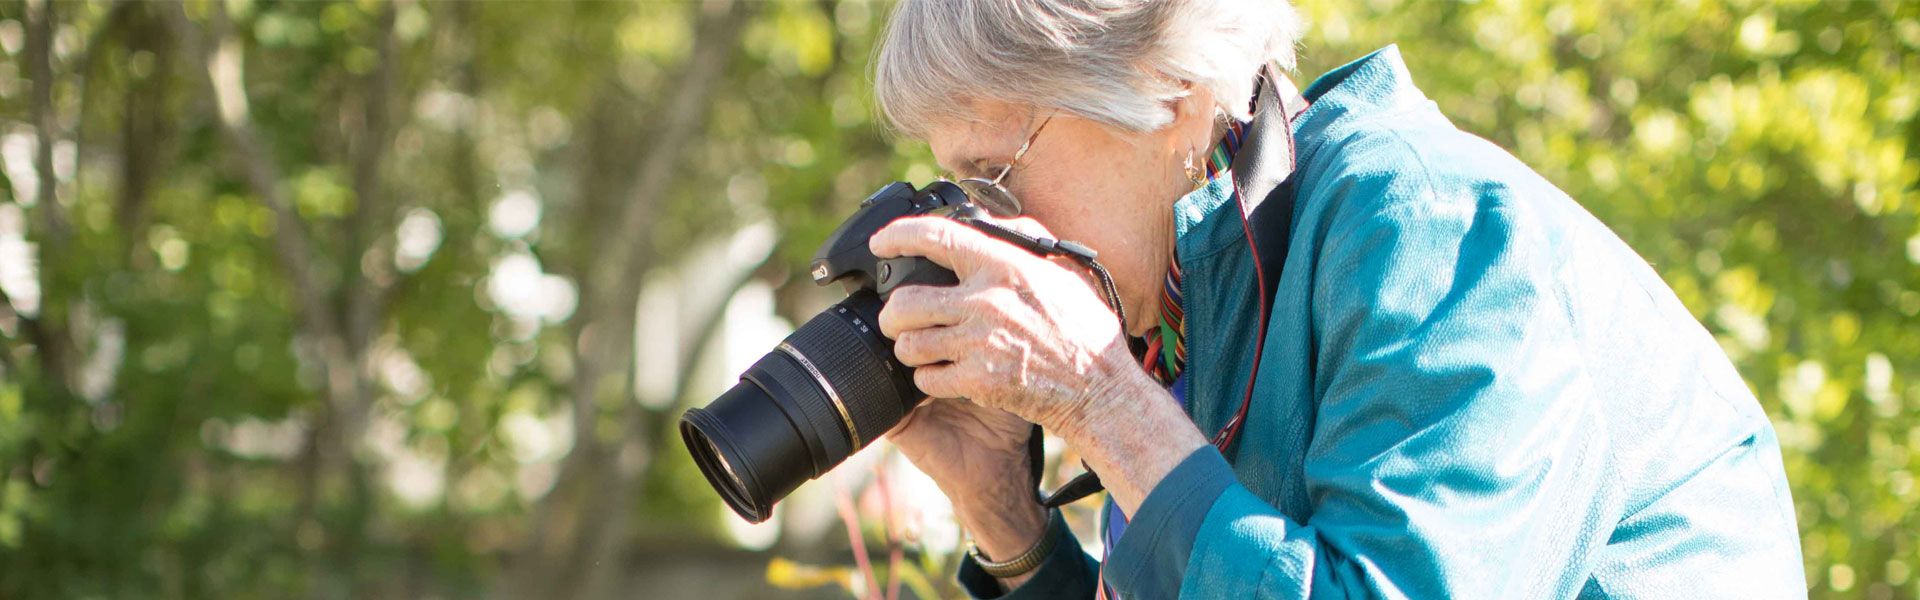 Senior women taking pictures with camera outside